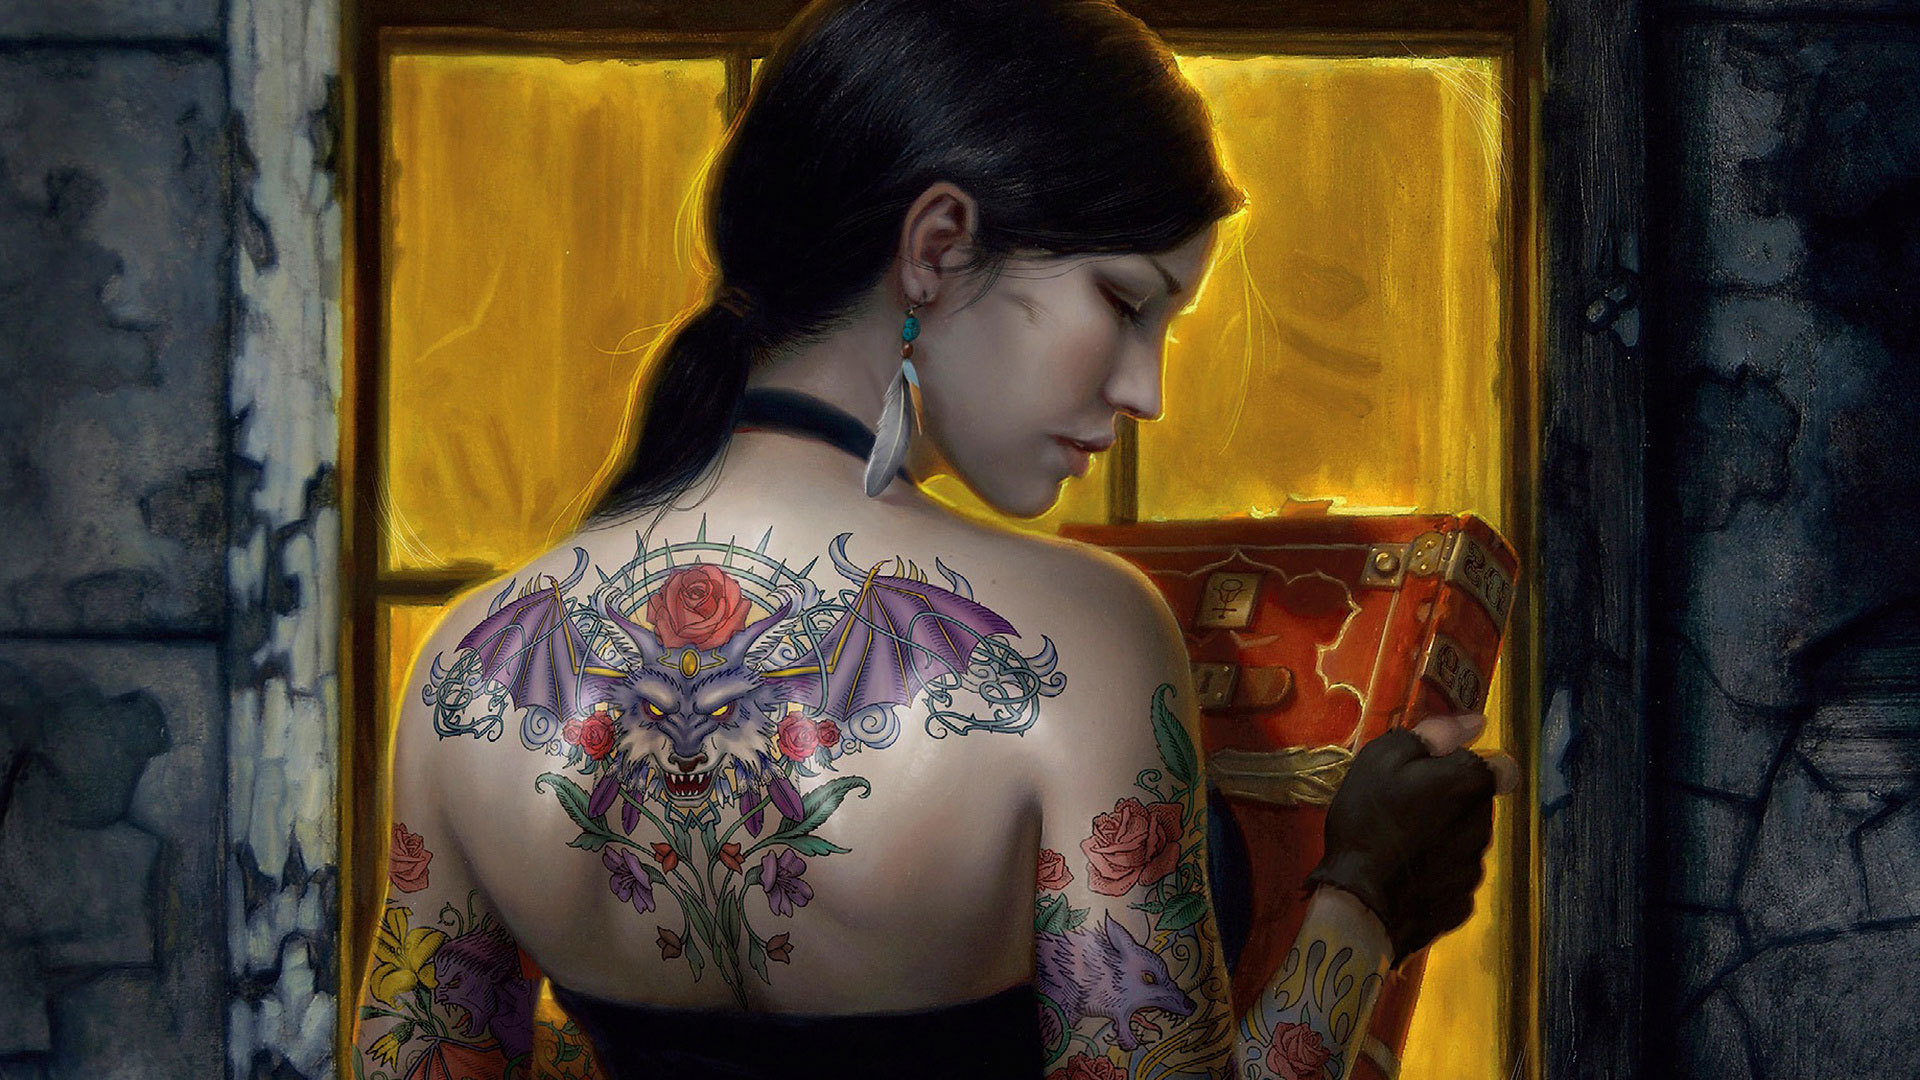 The-girl-with-the-dragon-tattoo-on-the-back-wallpaper-wpc9009800